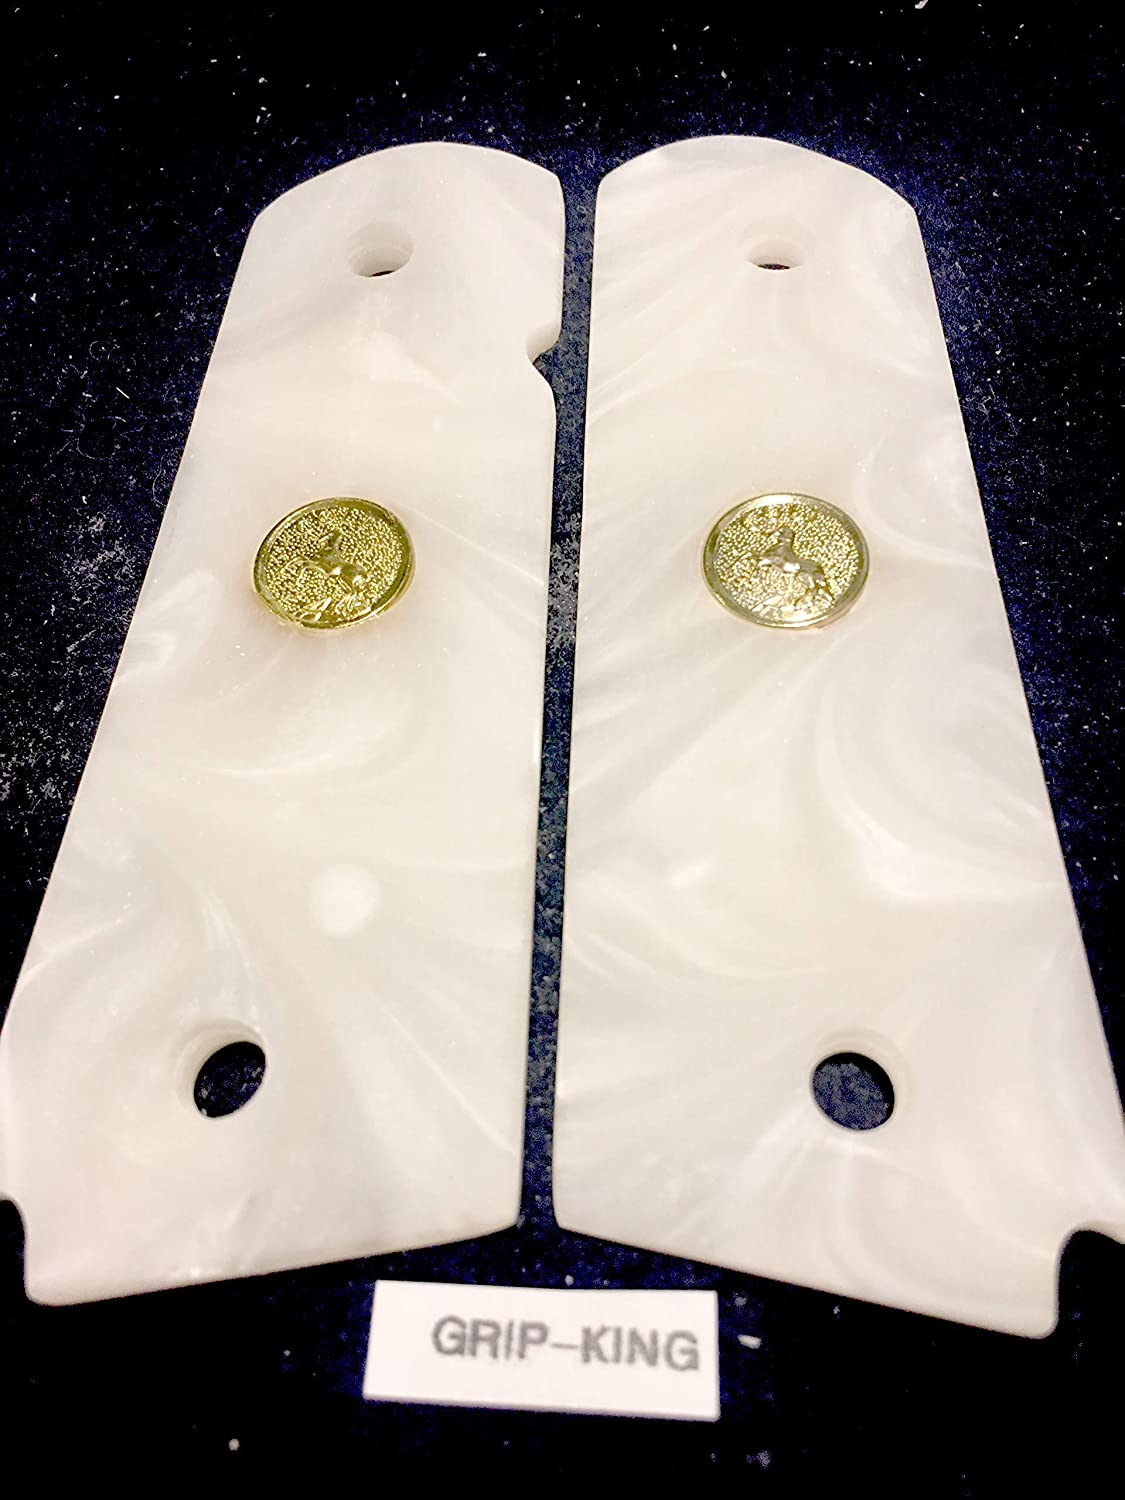 GOLD  RAMPANT HORSE  MEDALLIONS SALE $33.73 WHITE PEARLIZED DEEP SHINE HI-LUSTER,FREE STANDARD SHIPPING NEXT DAY 1911 GRIPS FITS FULL SIZE COLT